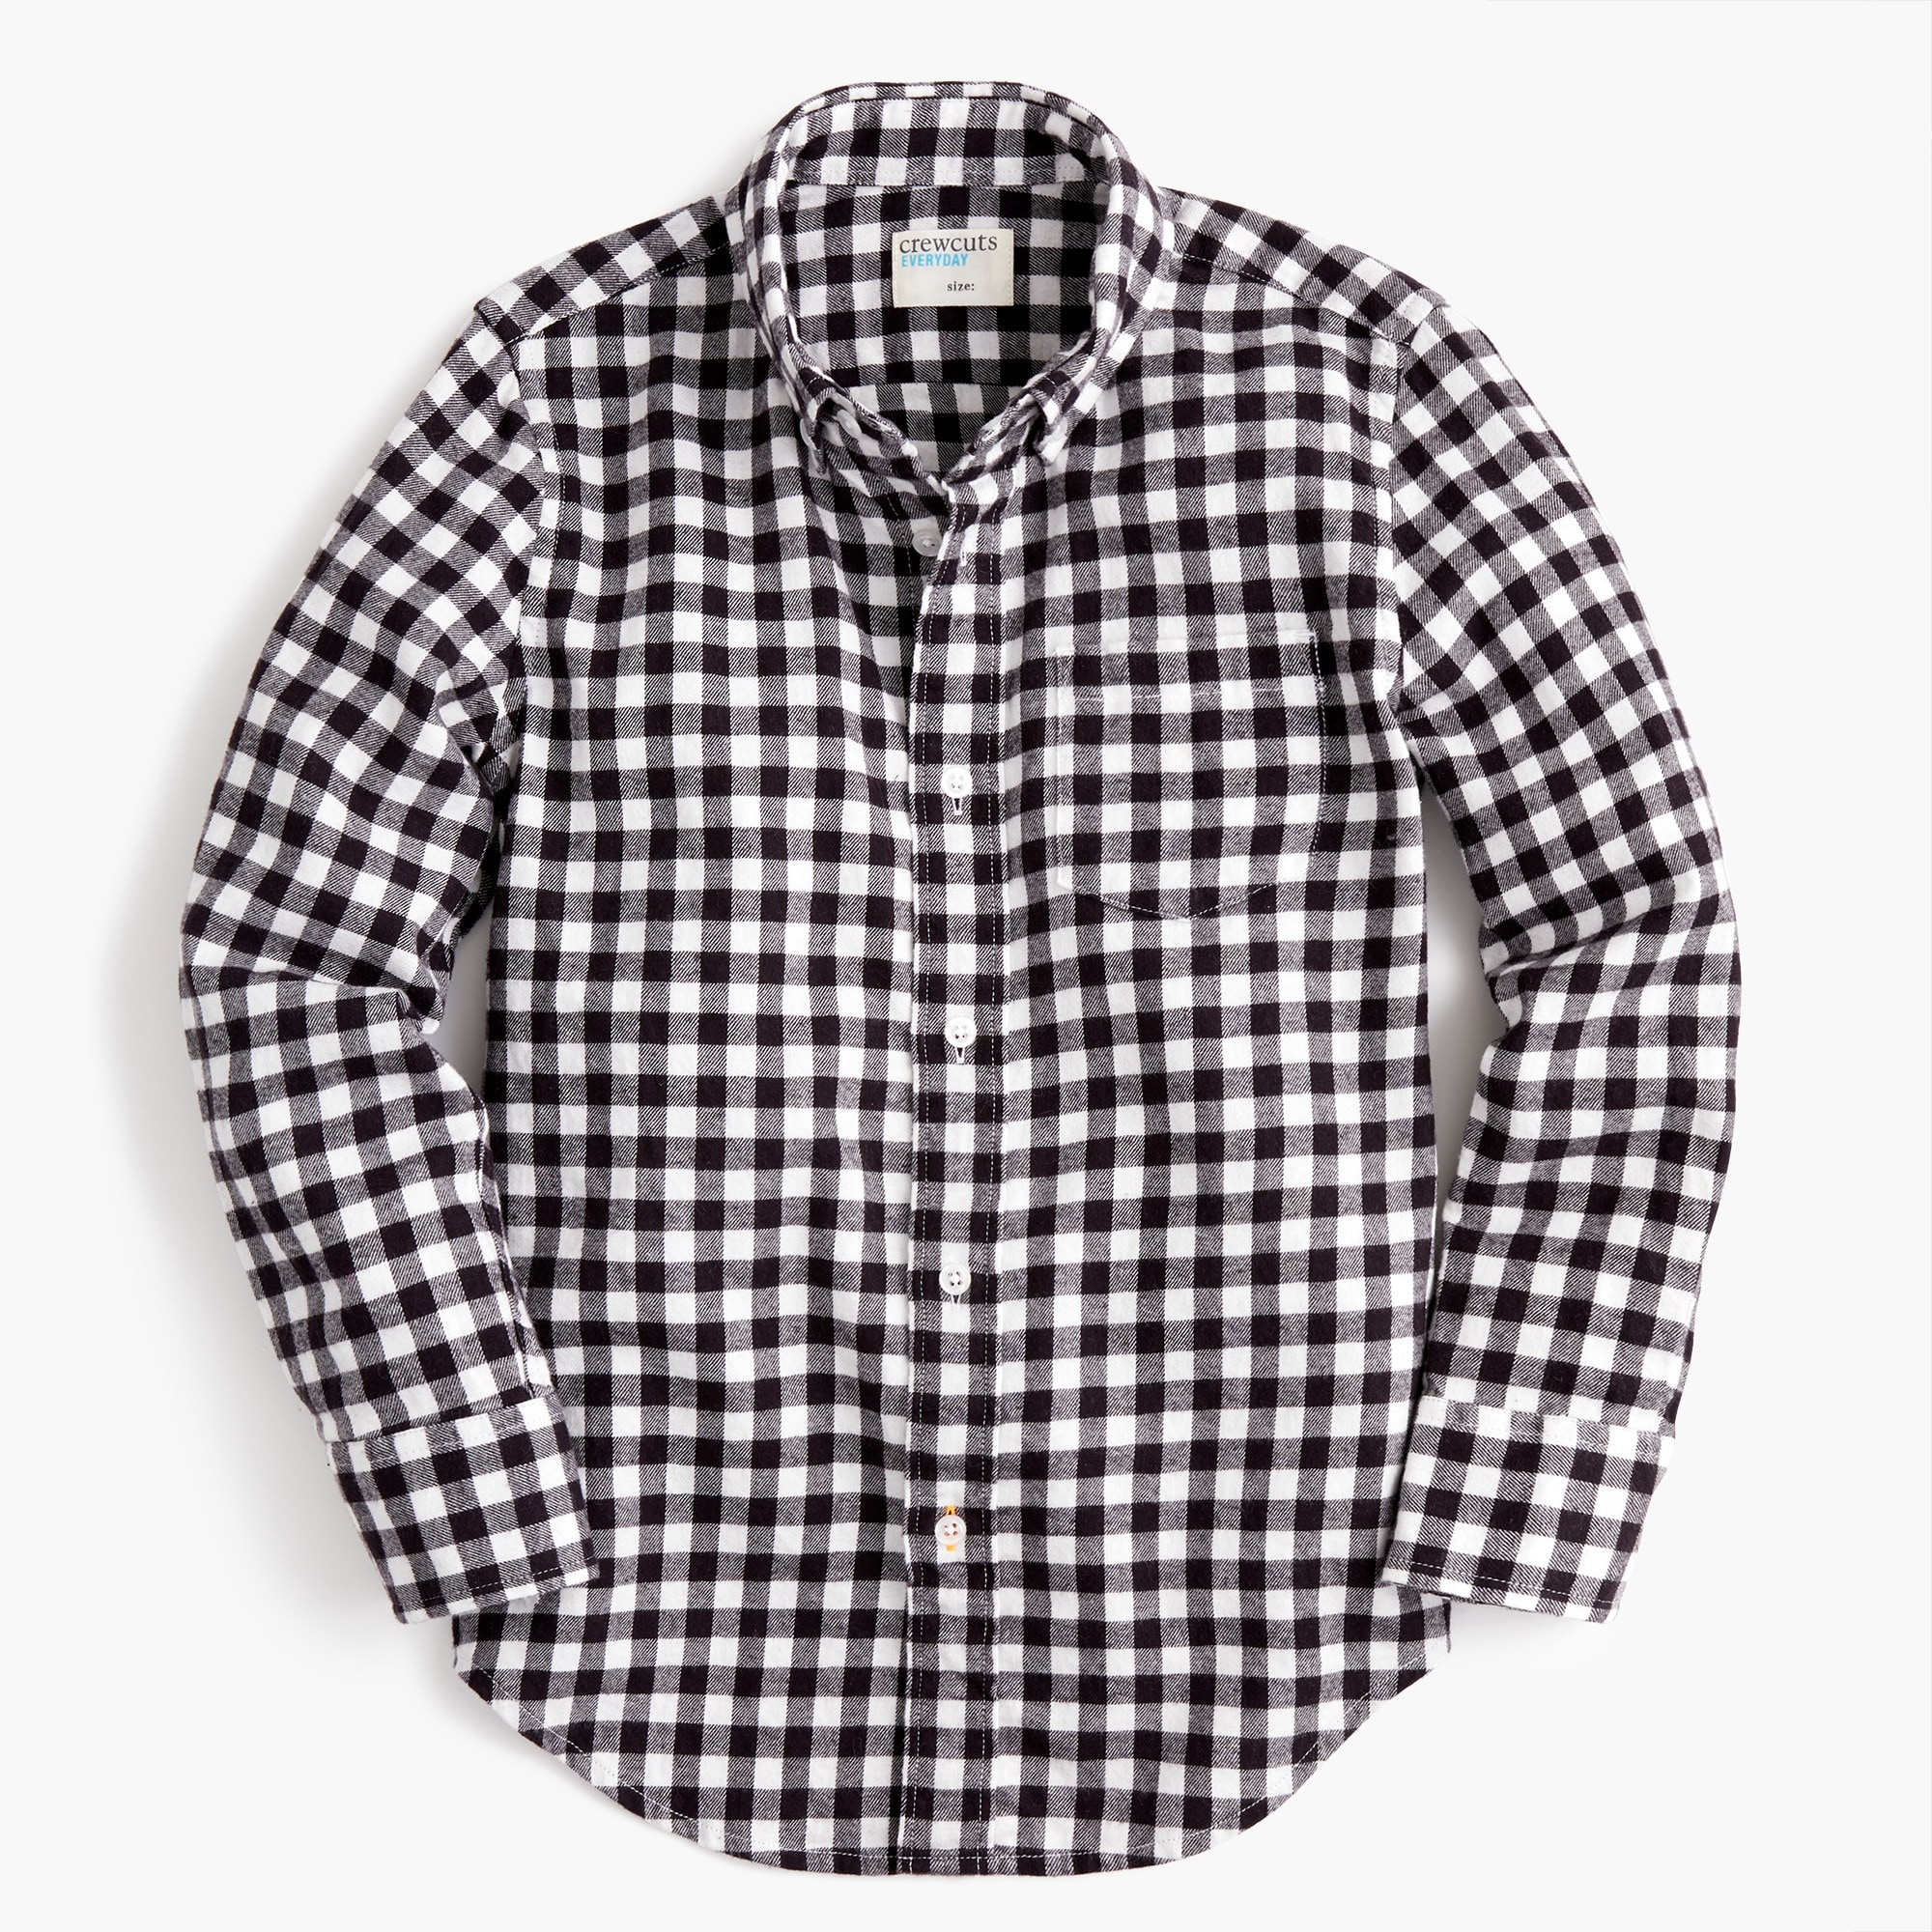 boys Boys' lightweight flannel shirt in checks